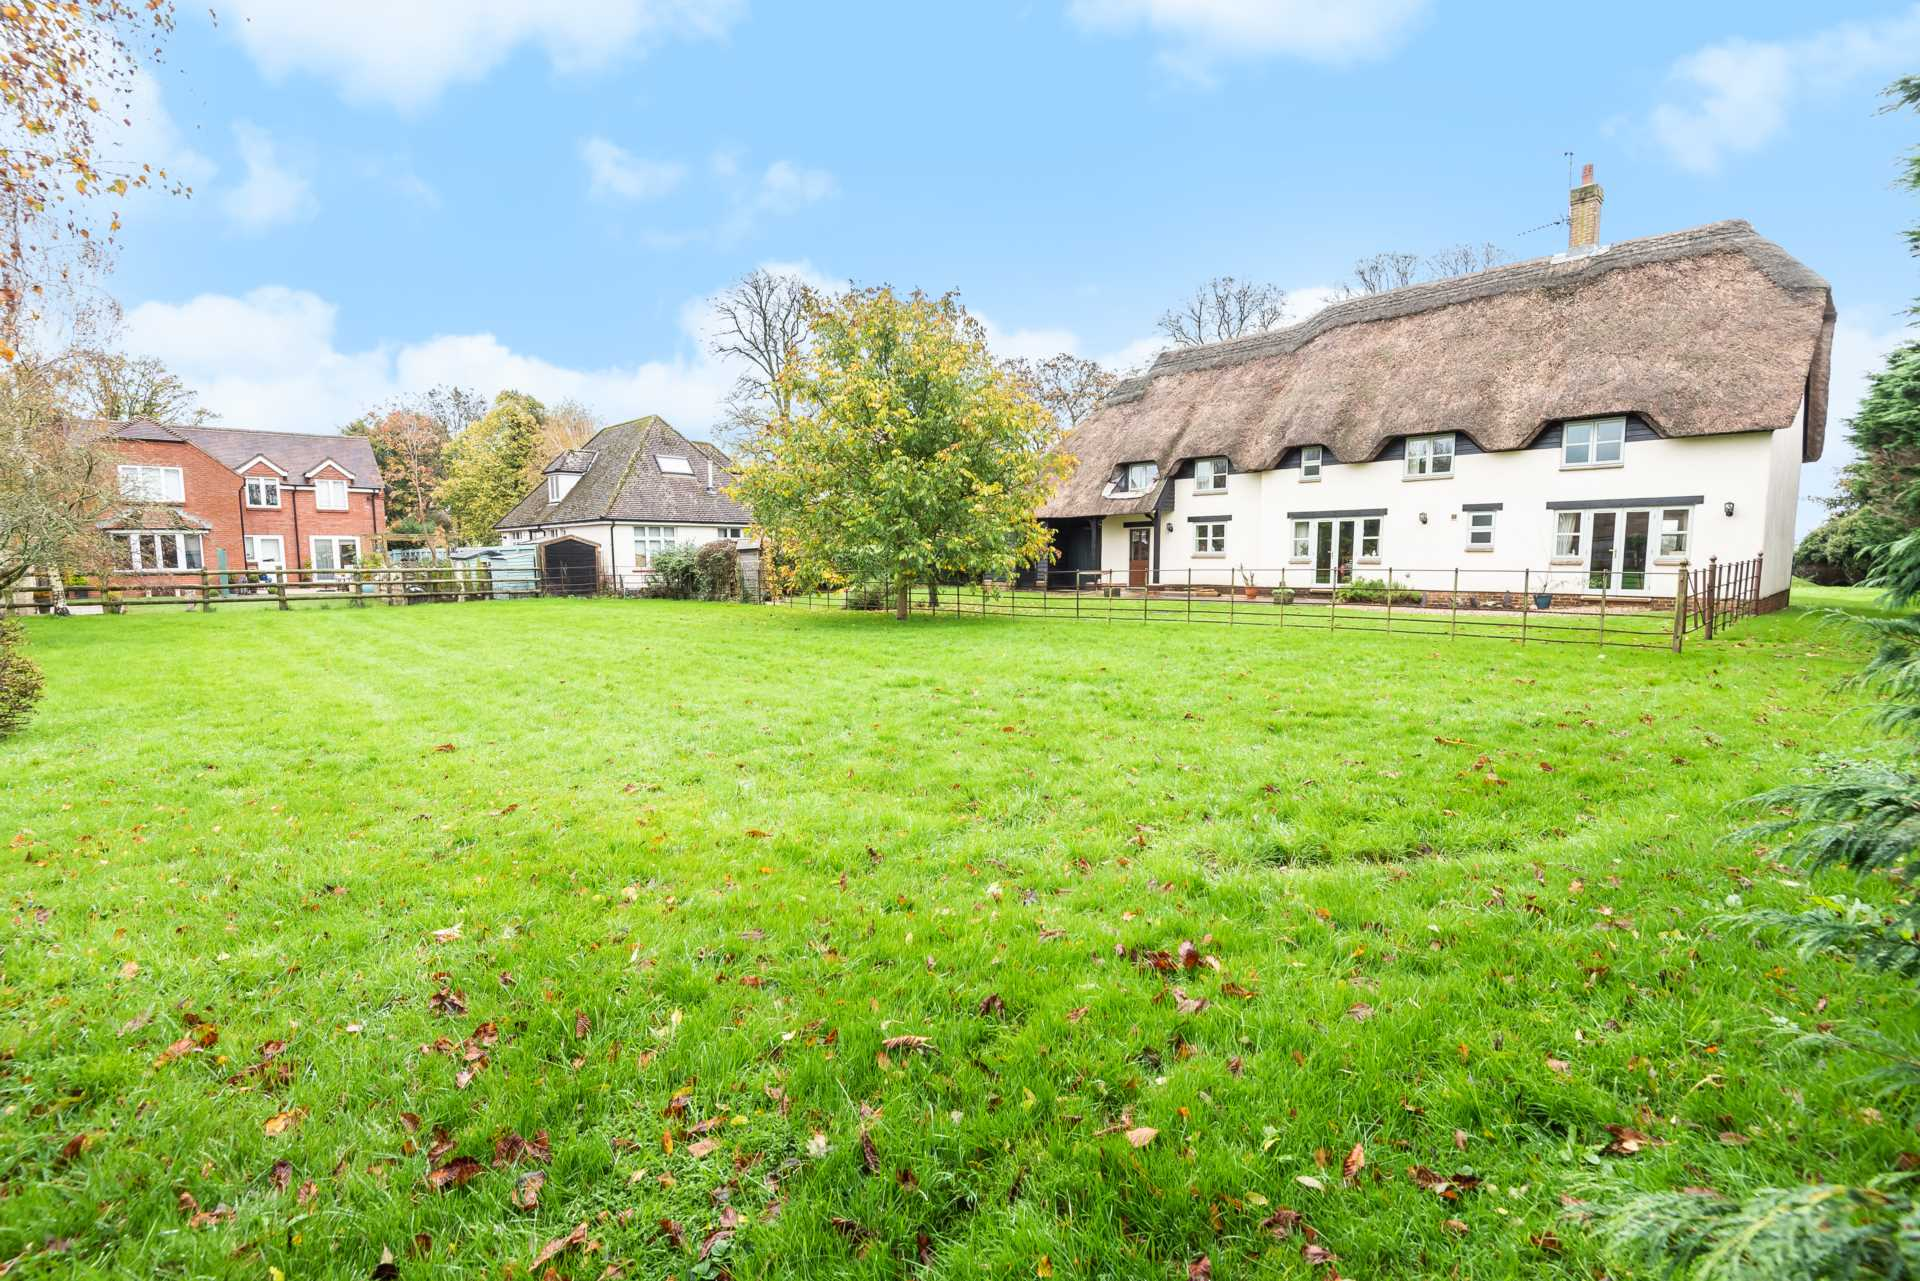 4 bed detached house for sale in Wagtails, Whatcombe Lane, Winterborne Whitechurch, Blandford Forum  - Property Image 10